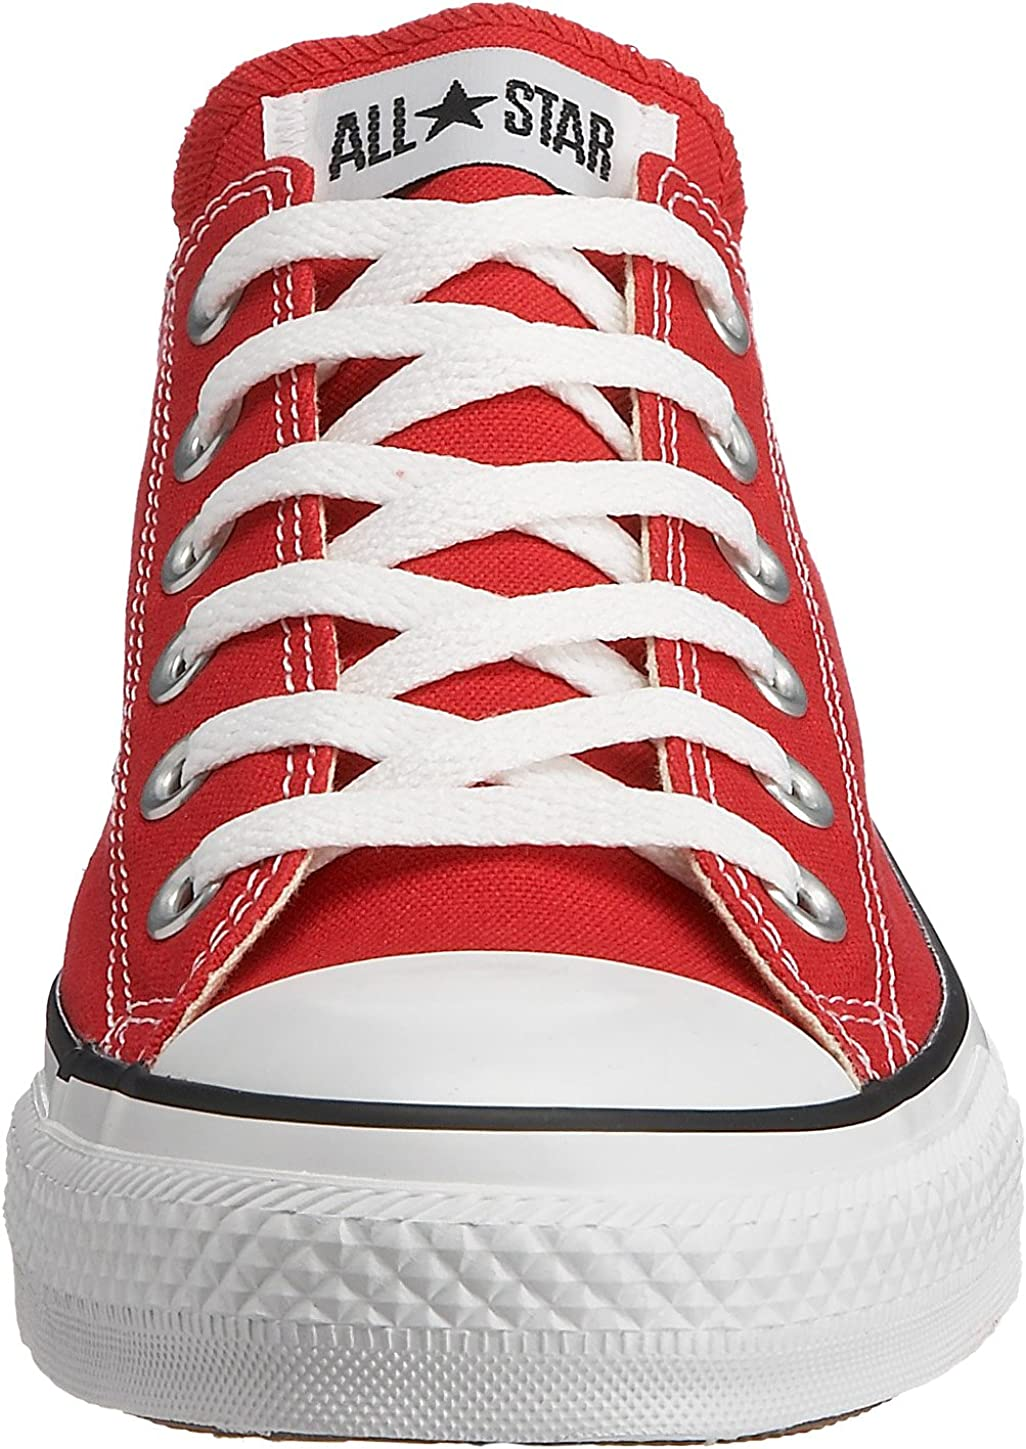 Converse Womens Ctas Ox Fabric Low Top Lace Up Fashion Sneakers Rosso Red